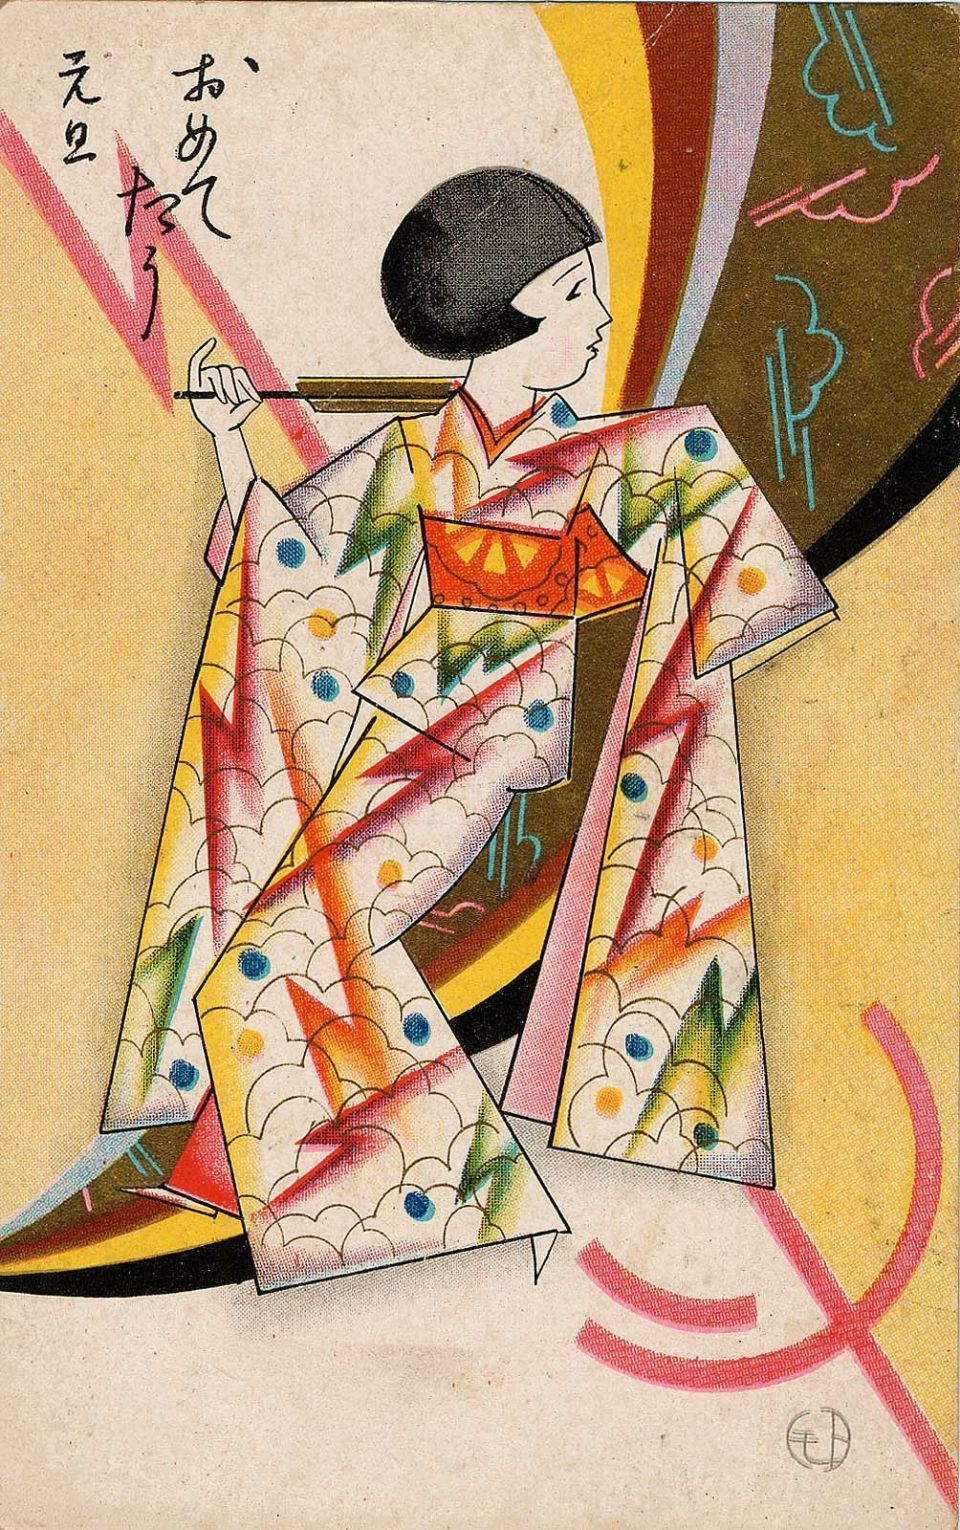 * New Year's postcard - Young girl in geometric patterned kimono - Signed Tomo トモ - Japan - 1920s